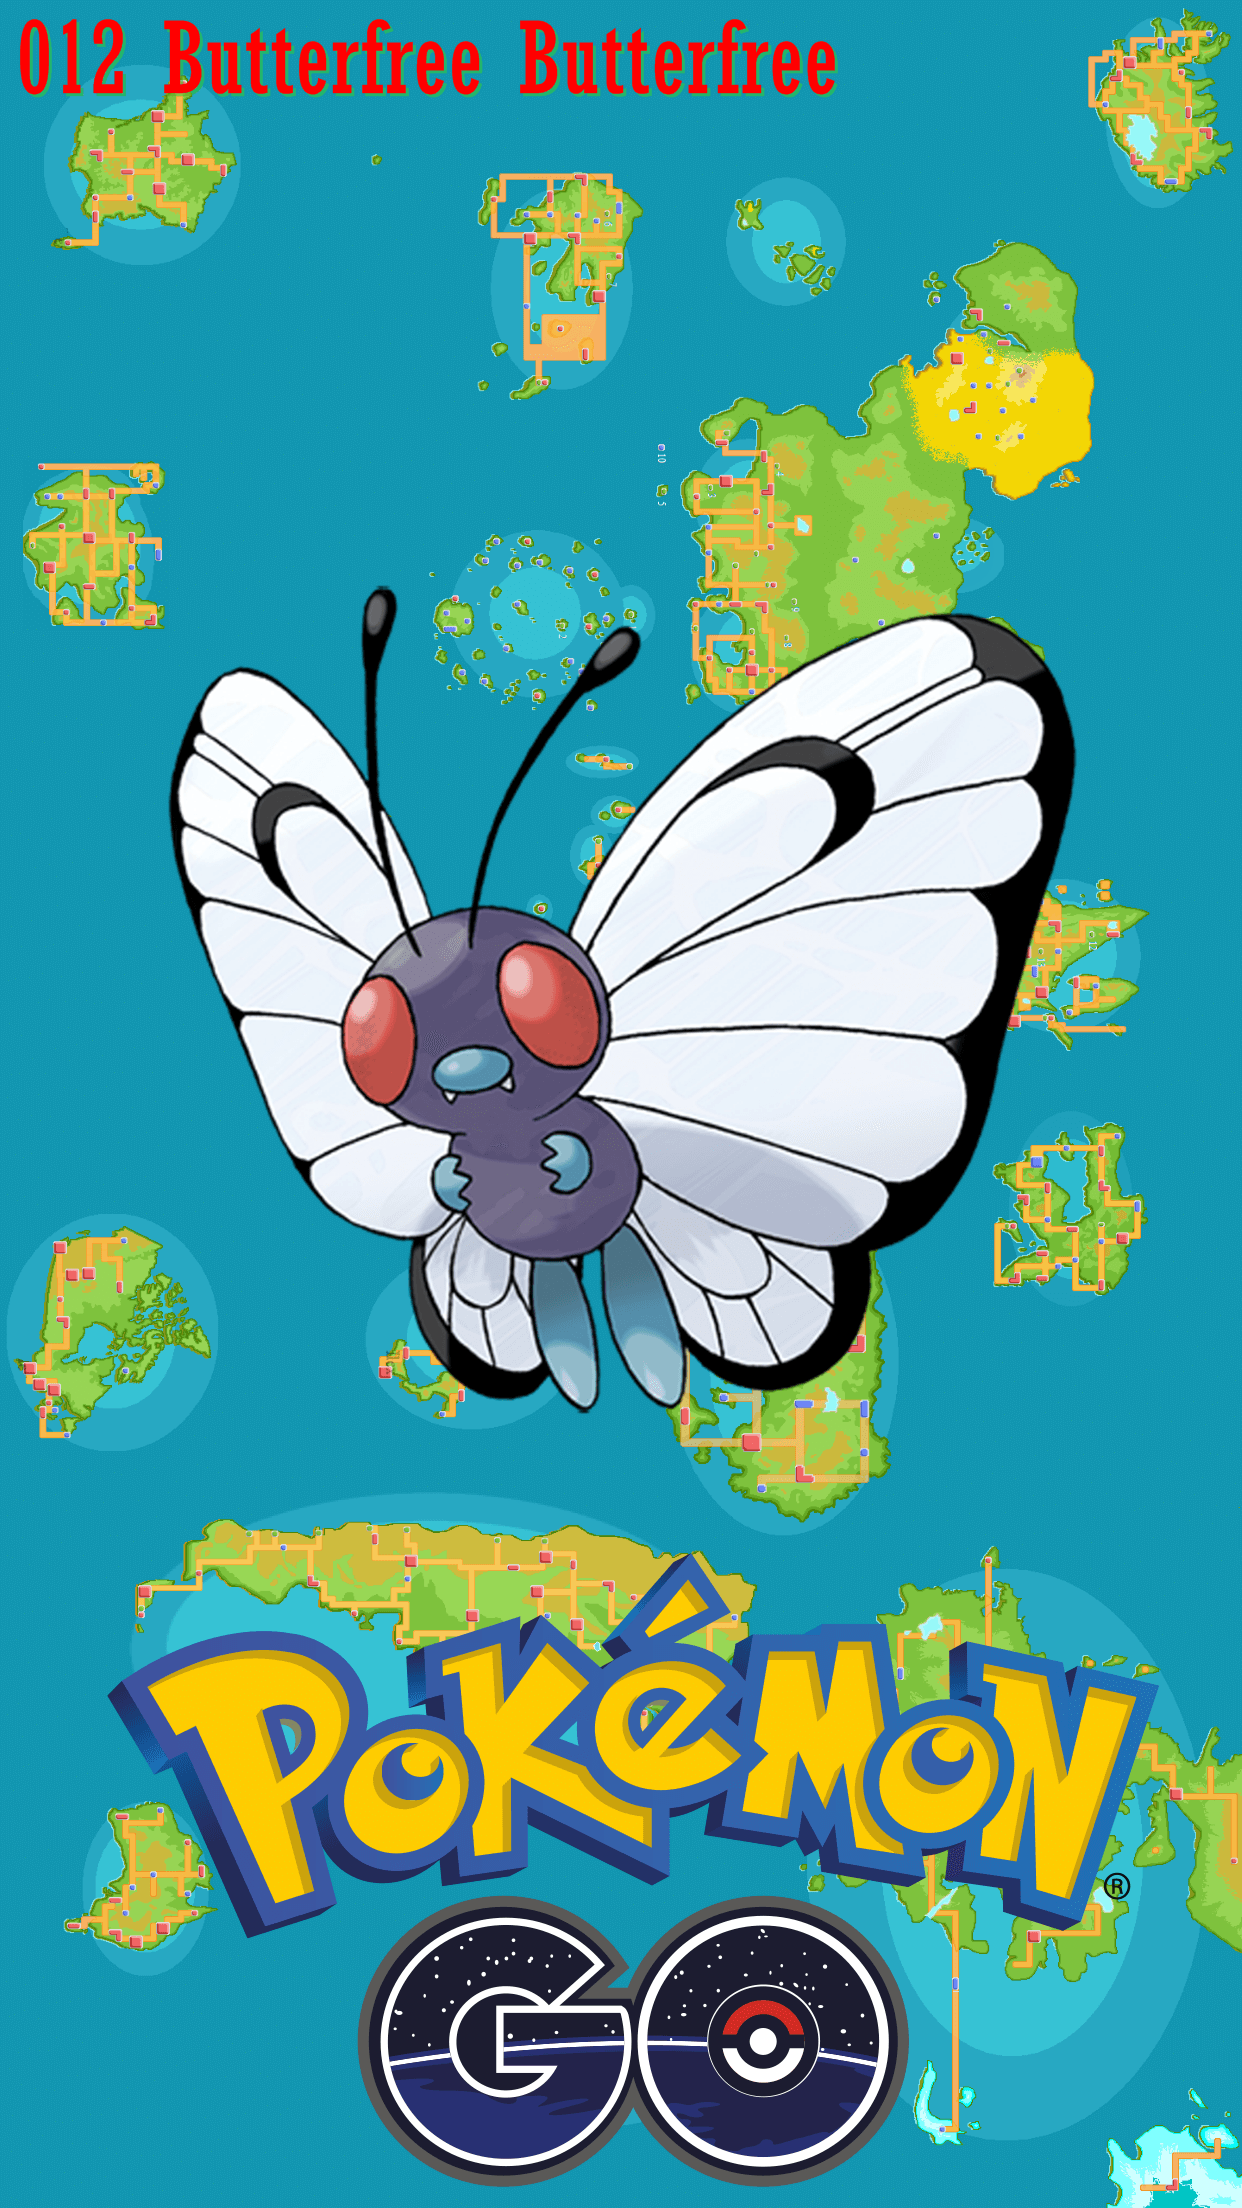 012 Street Map Butterfree Butterfree | Wallpaper